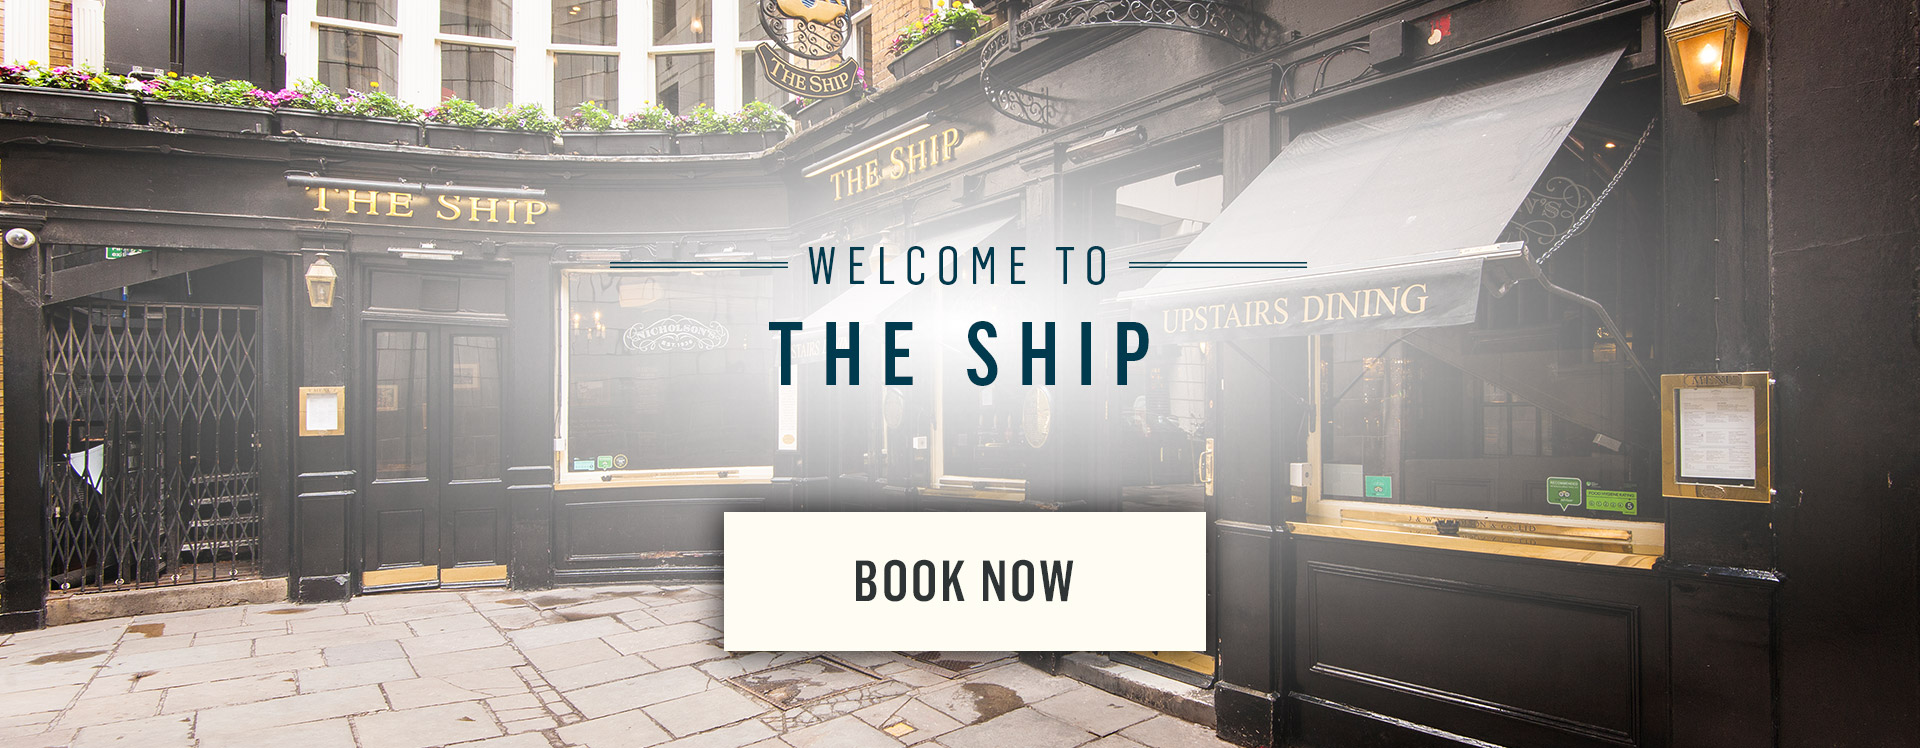 Welcome to The Ship - Book Now